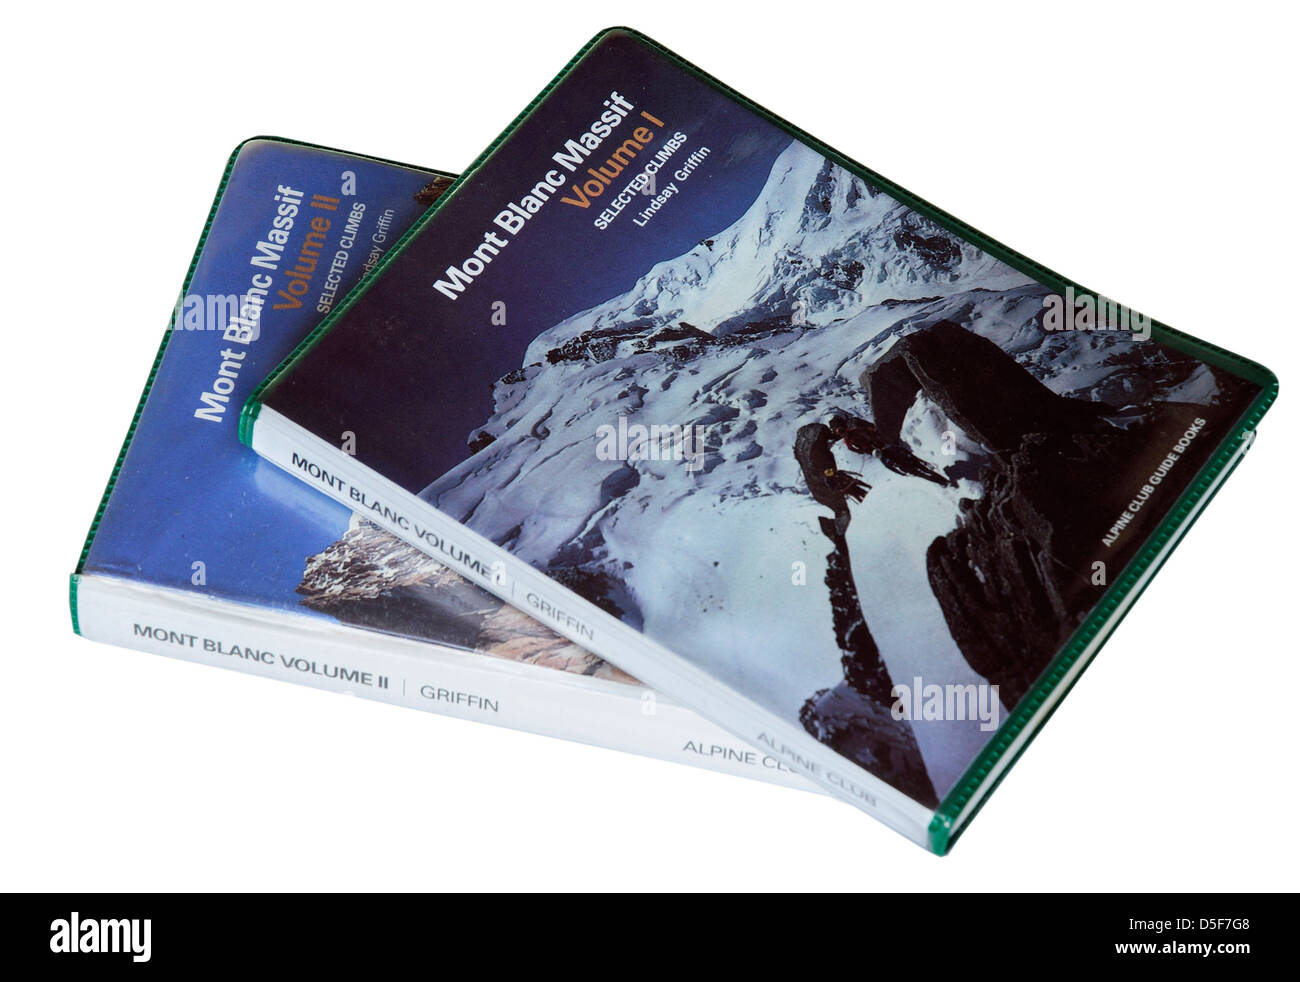 The Alpine Club Guidebook to mountaineering in the Mont Blanc Massif - Stock Image